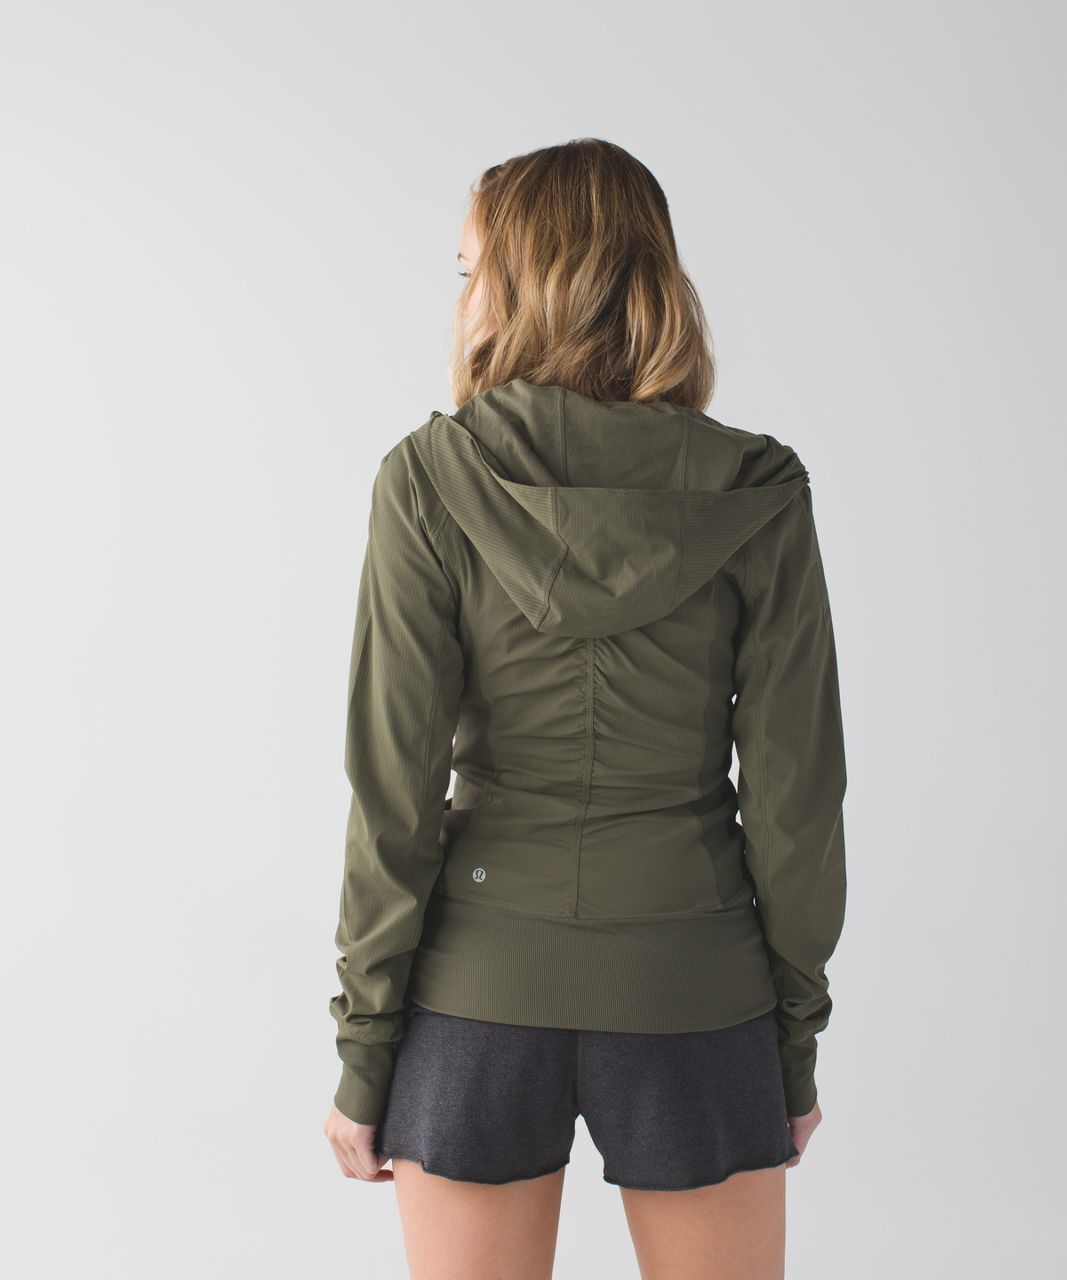 Lululemon In Flux Jacket - Fatigue Green